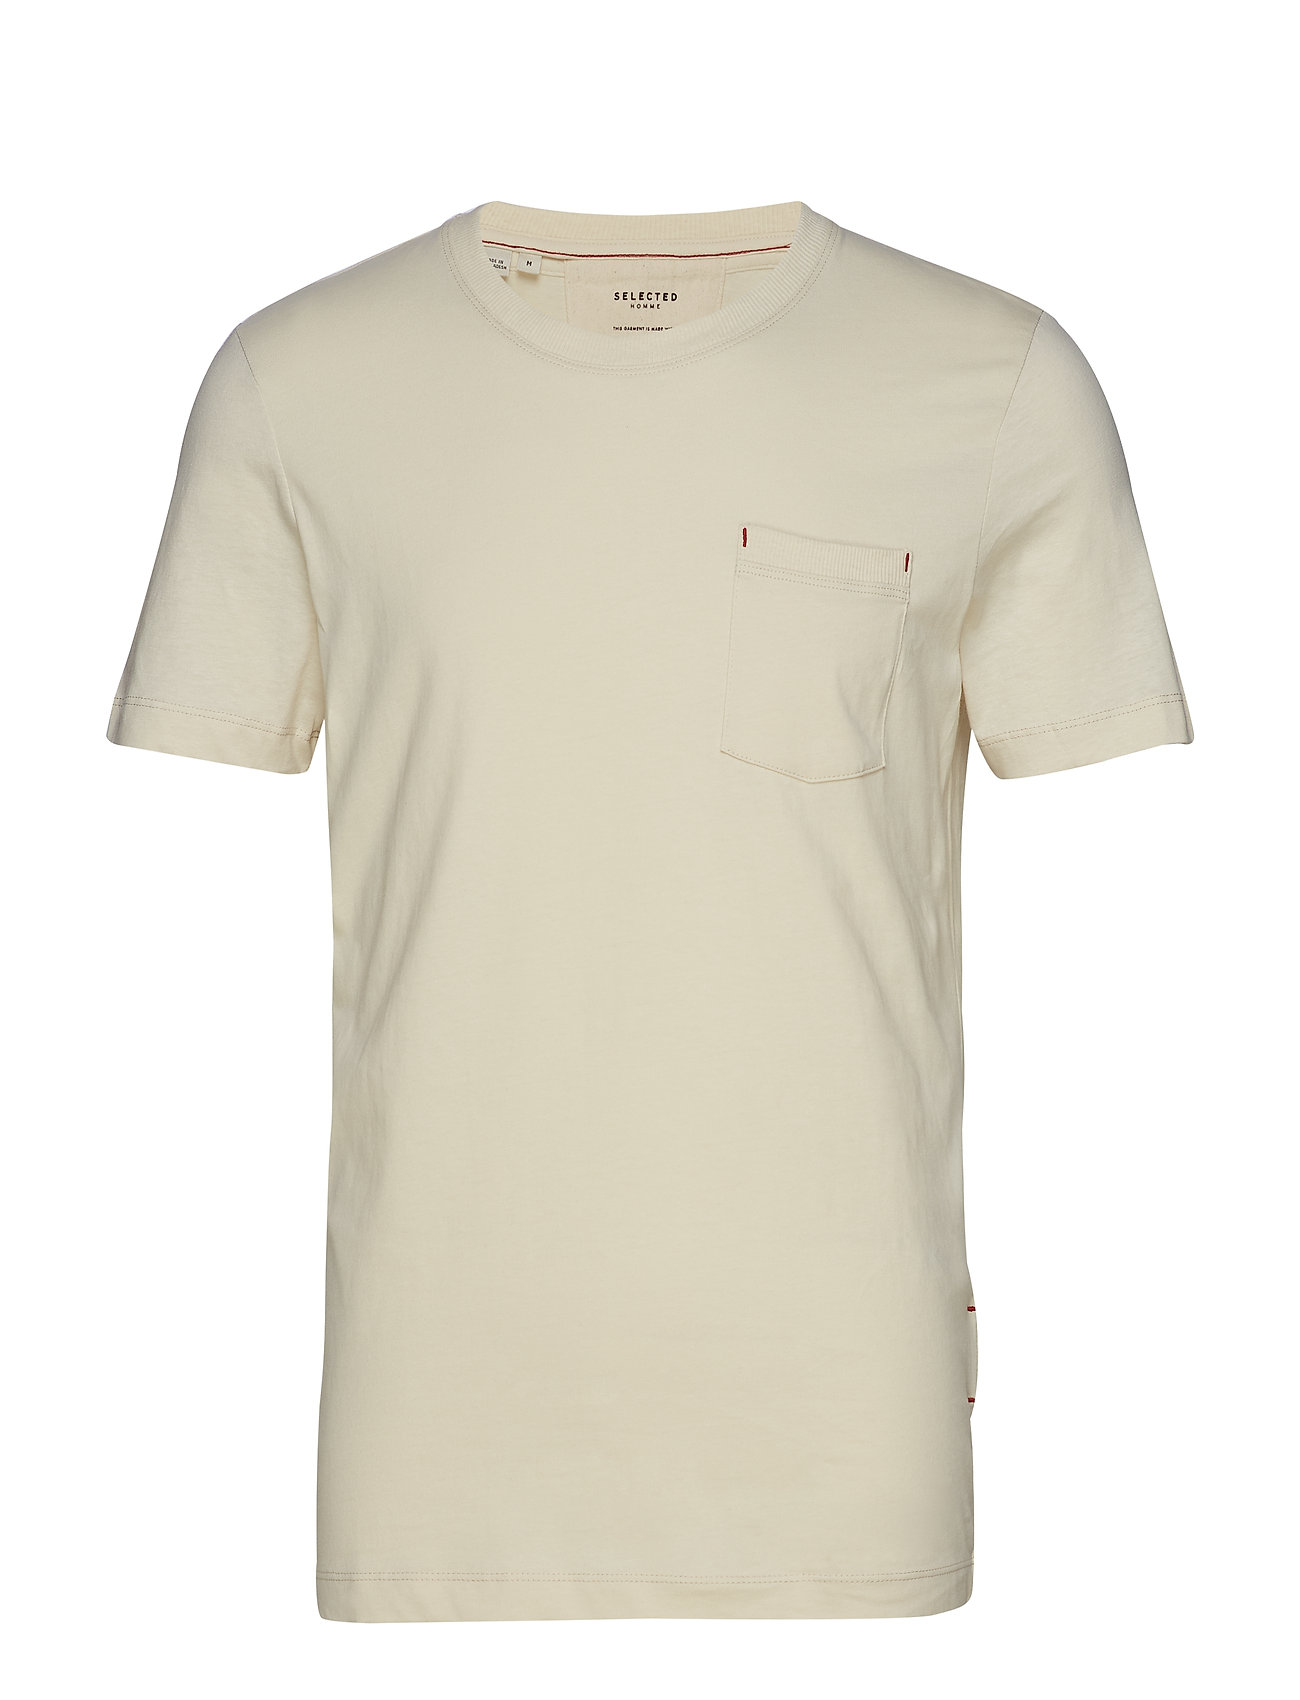 Selected Homme SLHJARED SS O-NECK TEE W - BONE WHITE